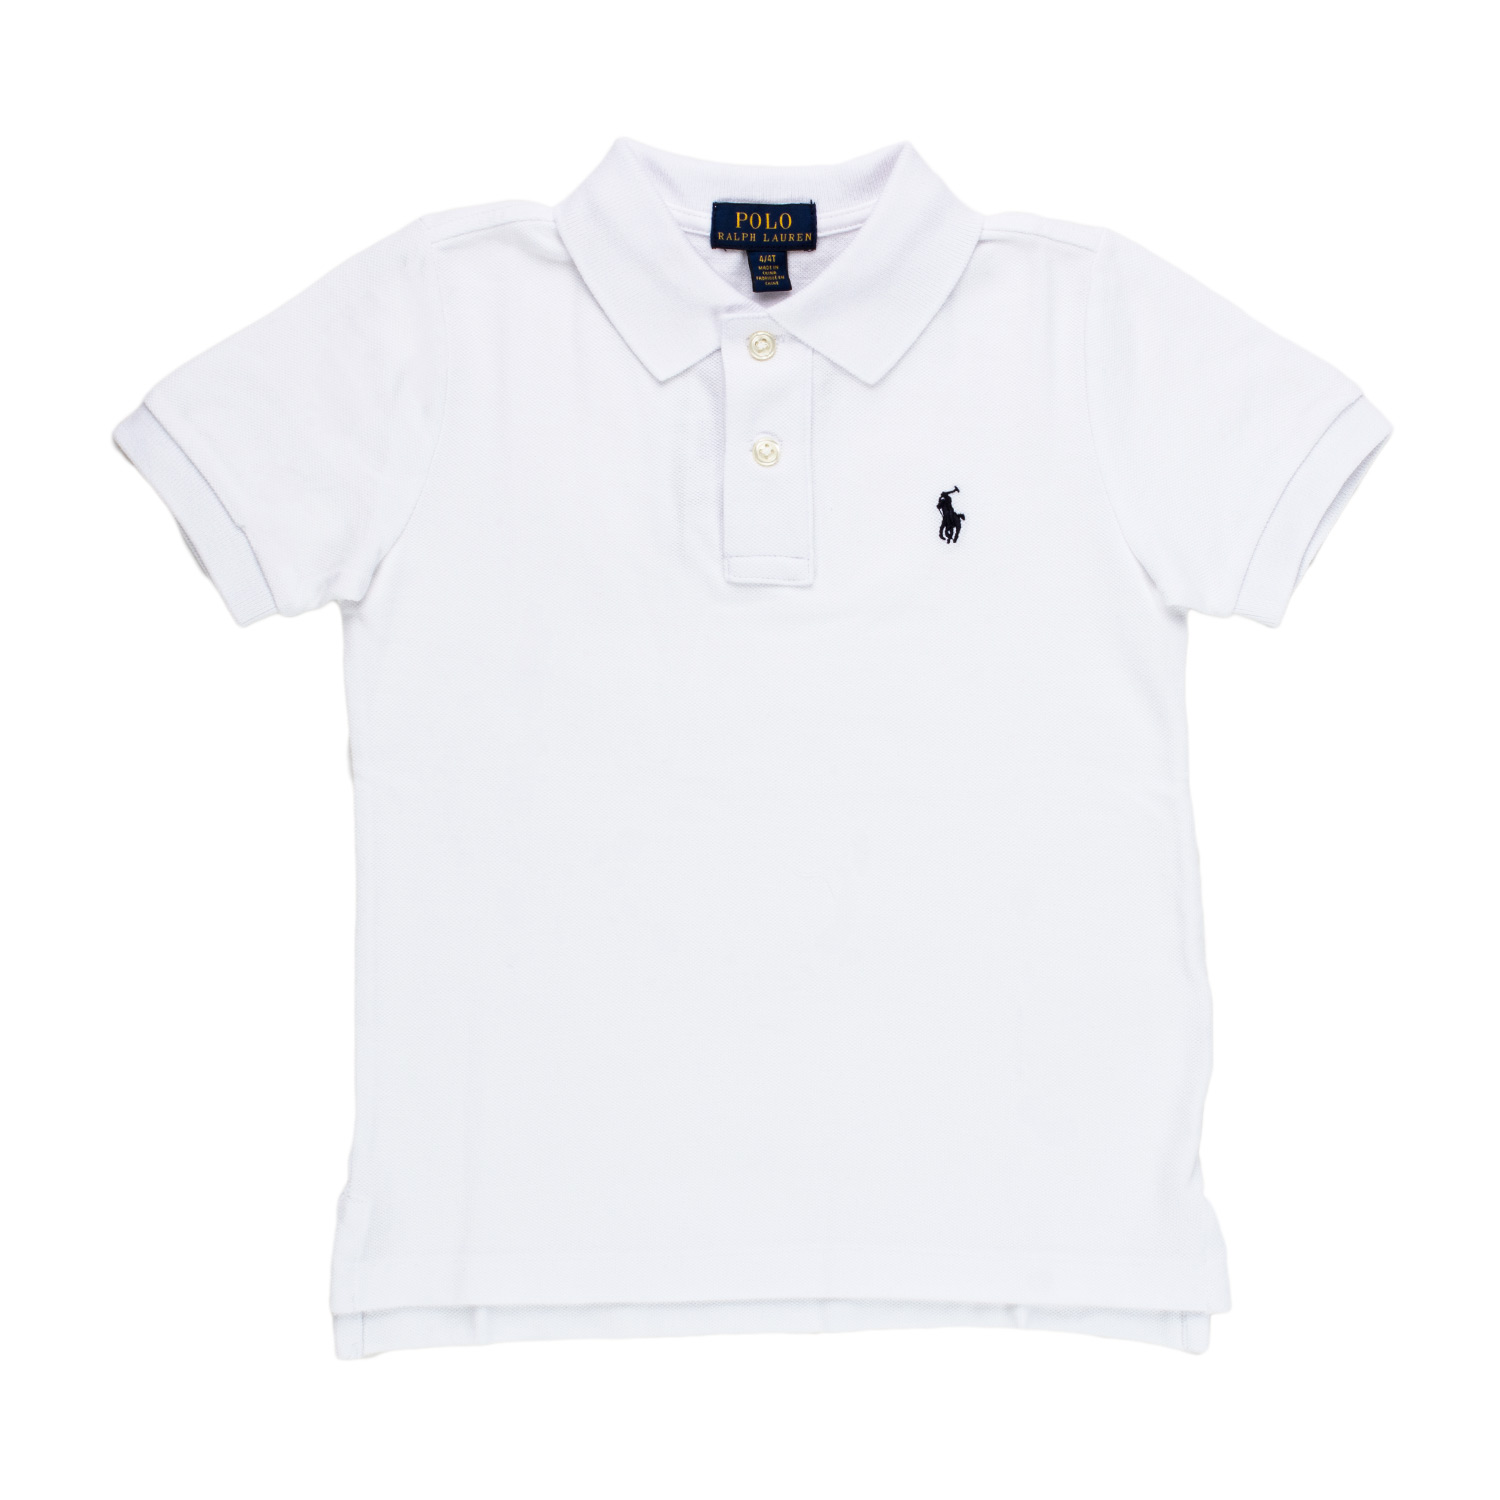 eaf8890f9 Home · RALPH LAUREN · T-shirts Polo neck Shirts; Slim Fit Cotton Mesh Polo  Kids White. 24027-ralph_lauren_polo_rl_kids_bianca-1.jpg